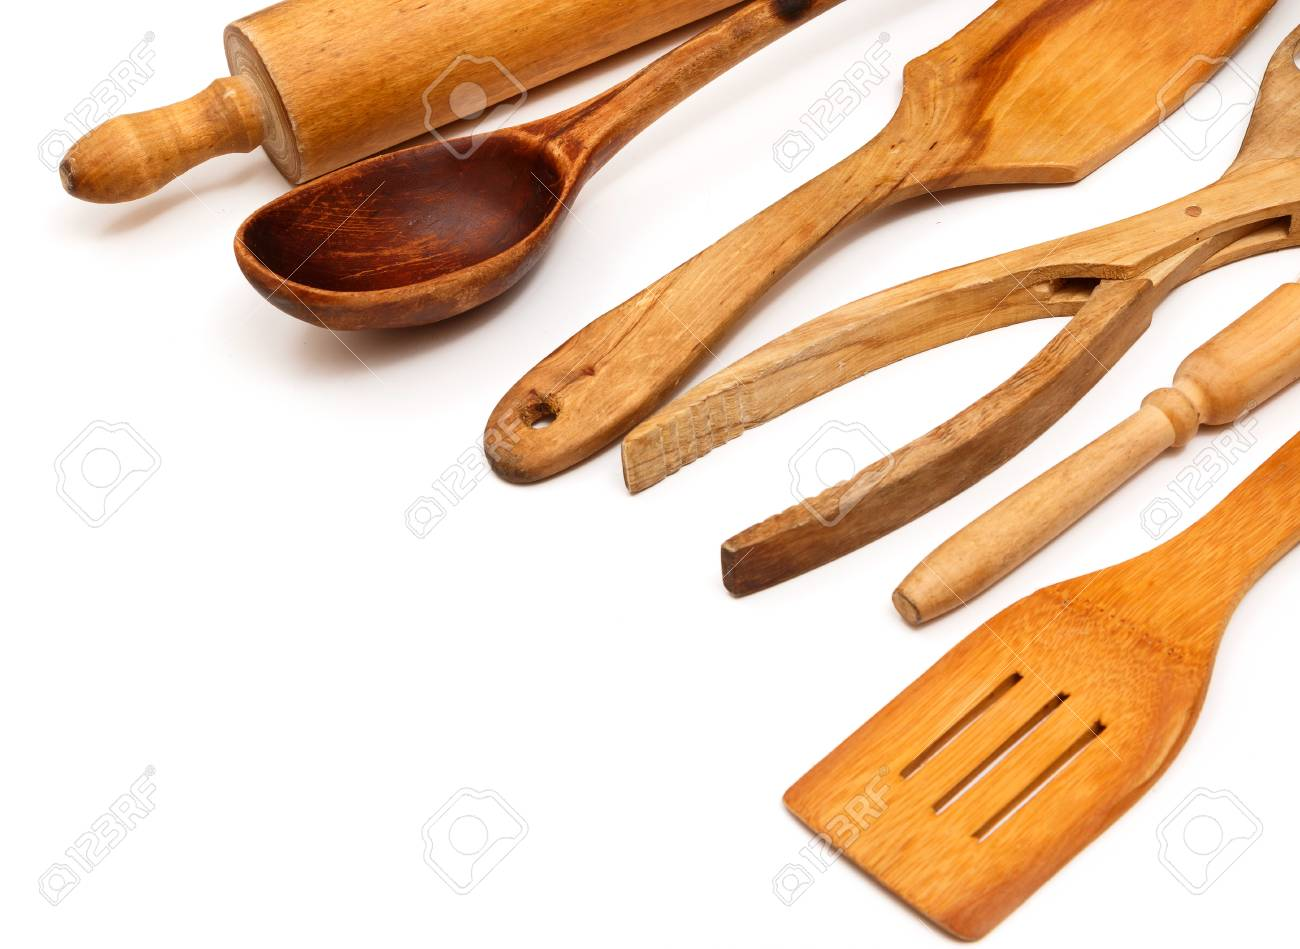 Wooden Kitchen Utensils On White Background Stock Photo, Picture And ...